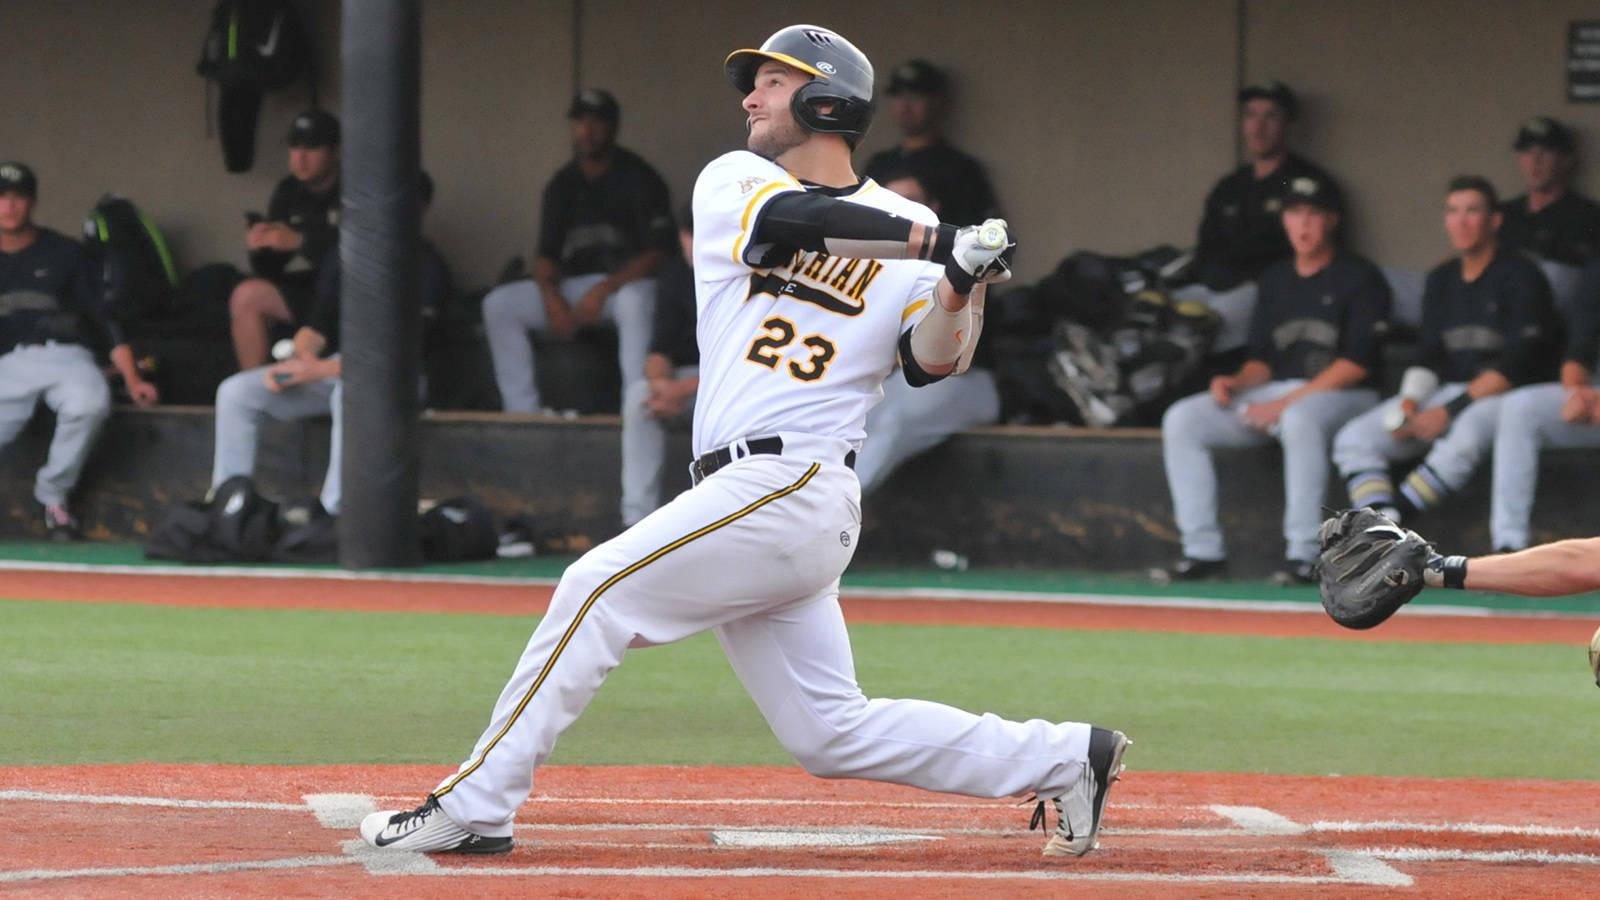 Senior right-handed pitcher and infielder Caleb McCann follows through his swing. Courtesy of DC Mayo; App State athletics